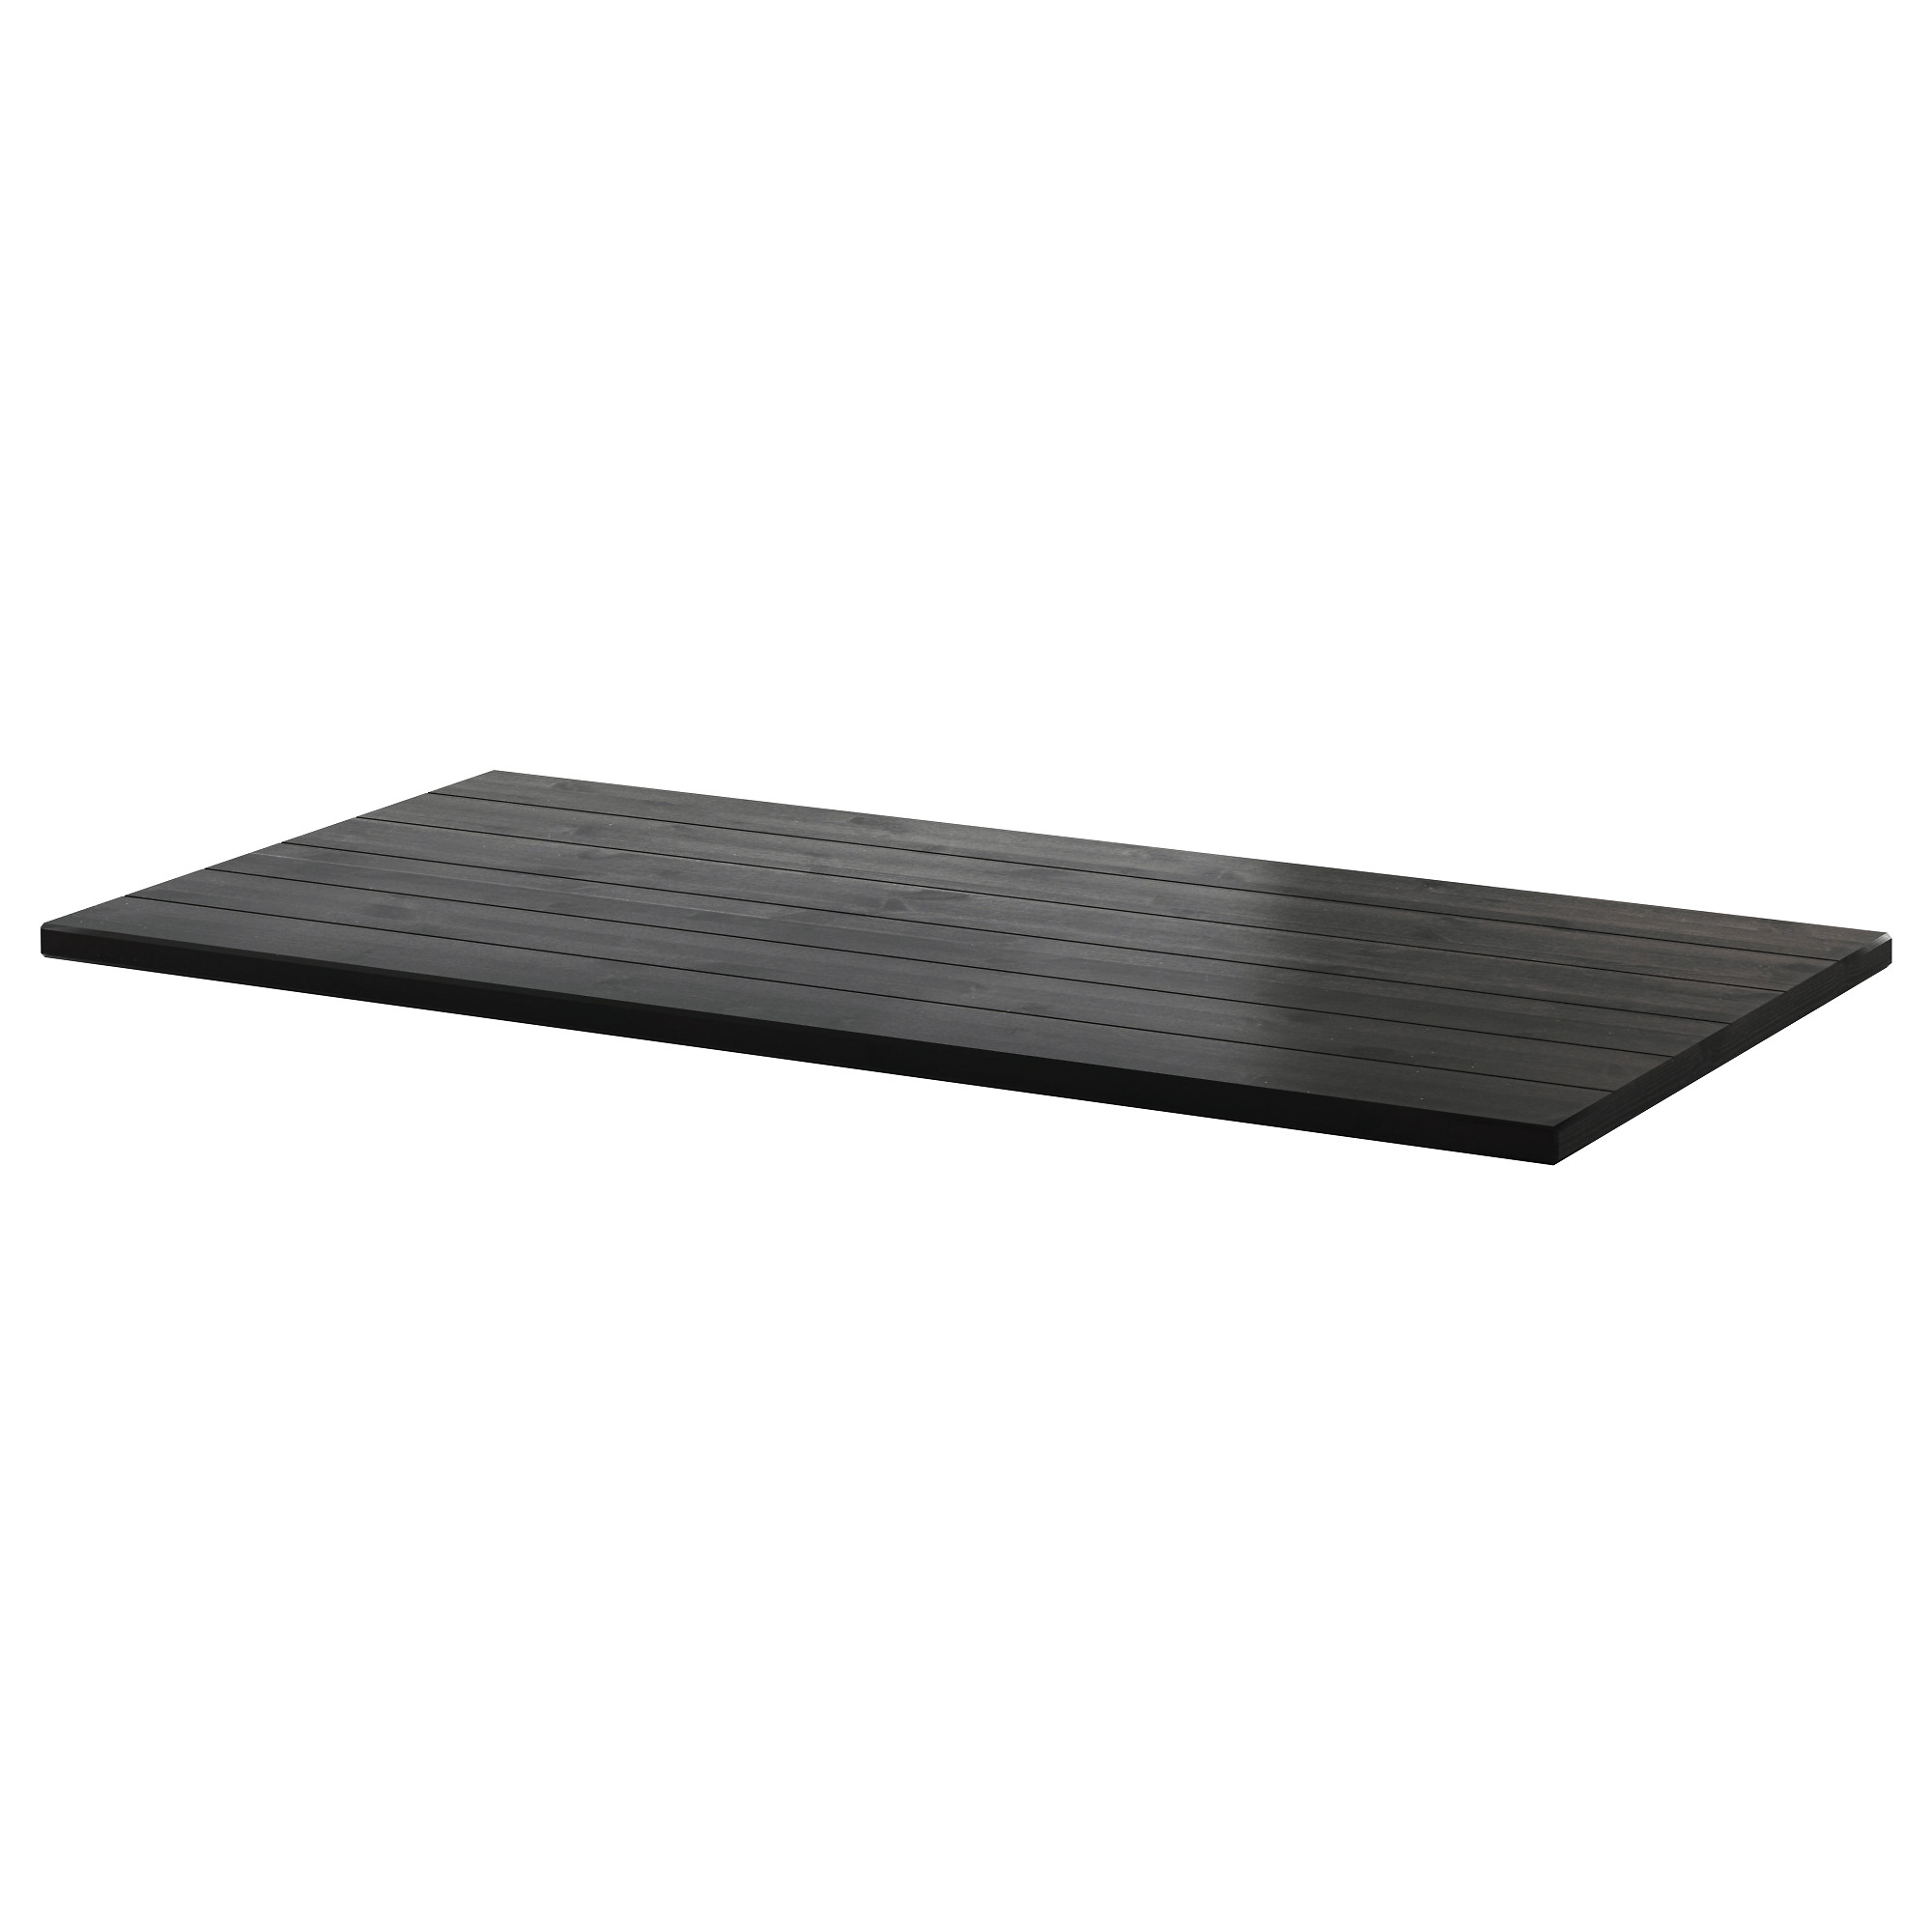 Ikea Us Furniture And Home Furnishings Ikea Table Tops Ikea Dining Table Top